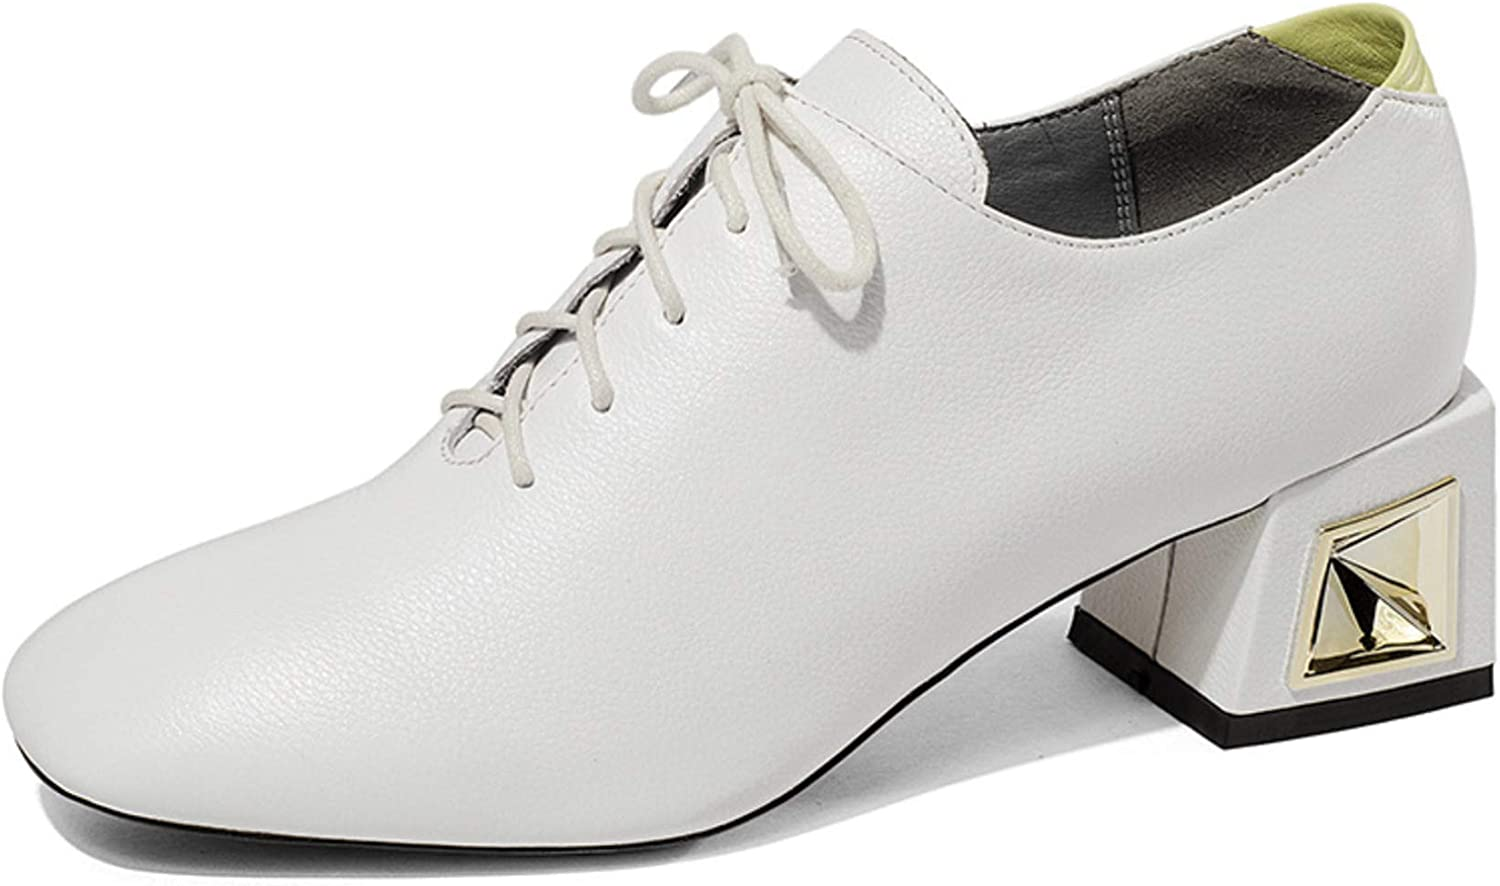 Shiney Wwomen's High-Heels New Leather Single shoes Chunky Heel Front Lace Up Spring and Summer